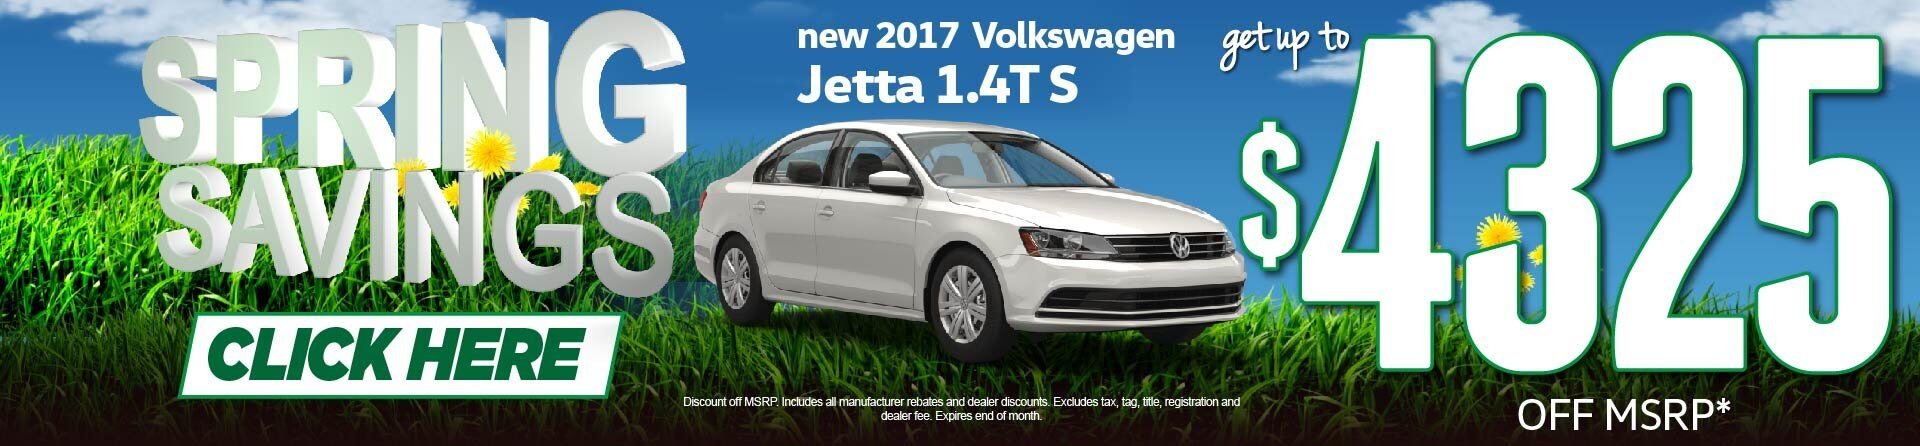 Spring Savings Jetta Price